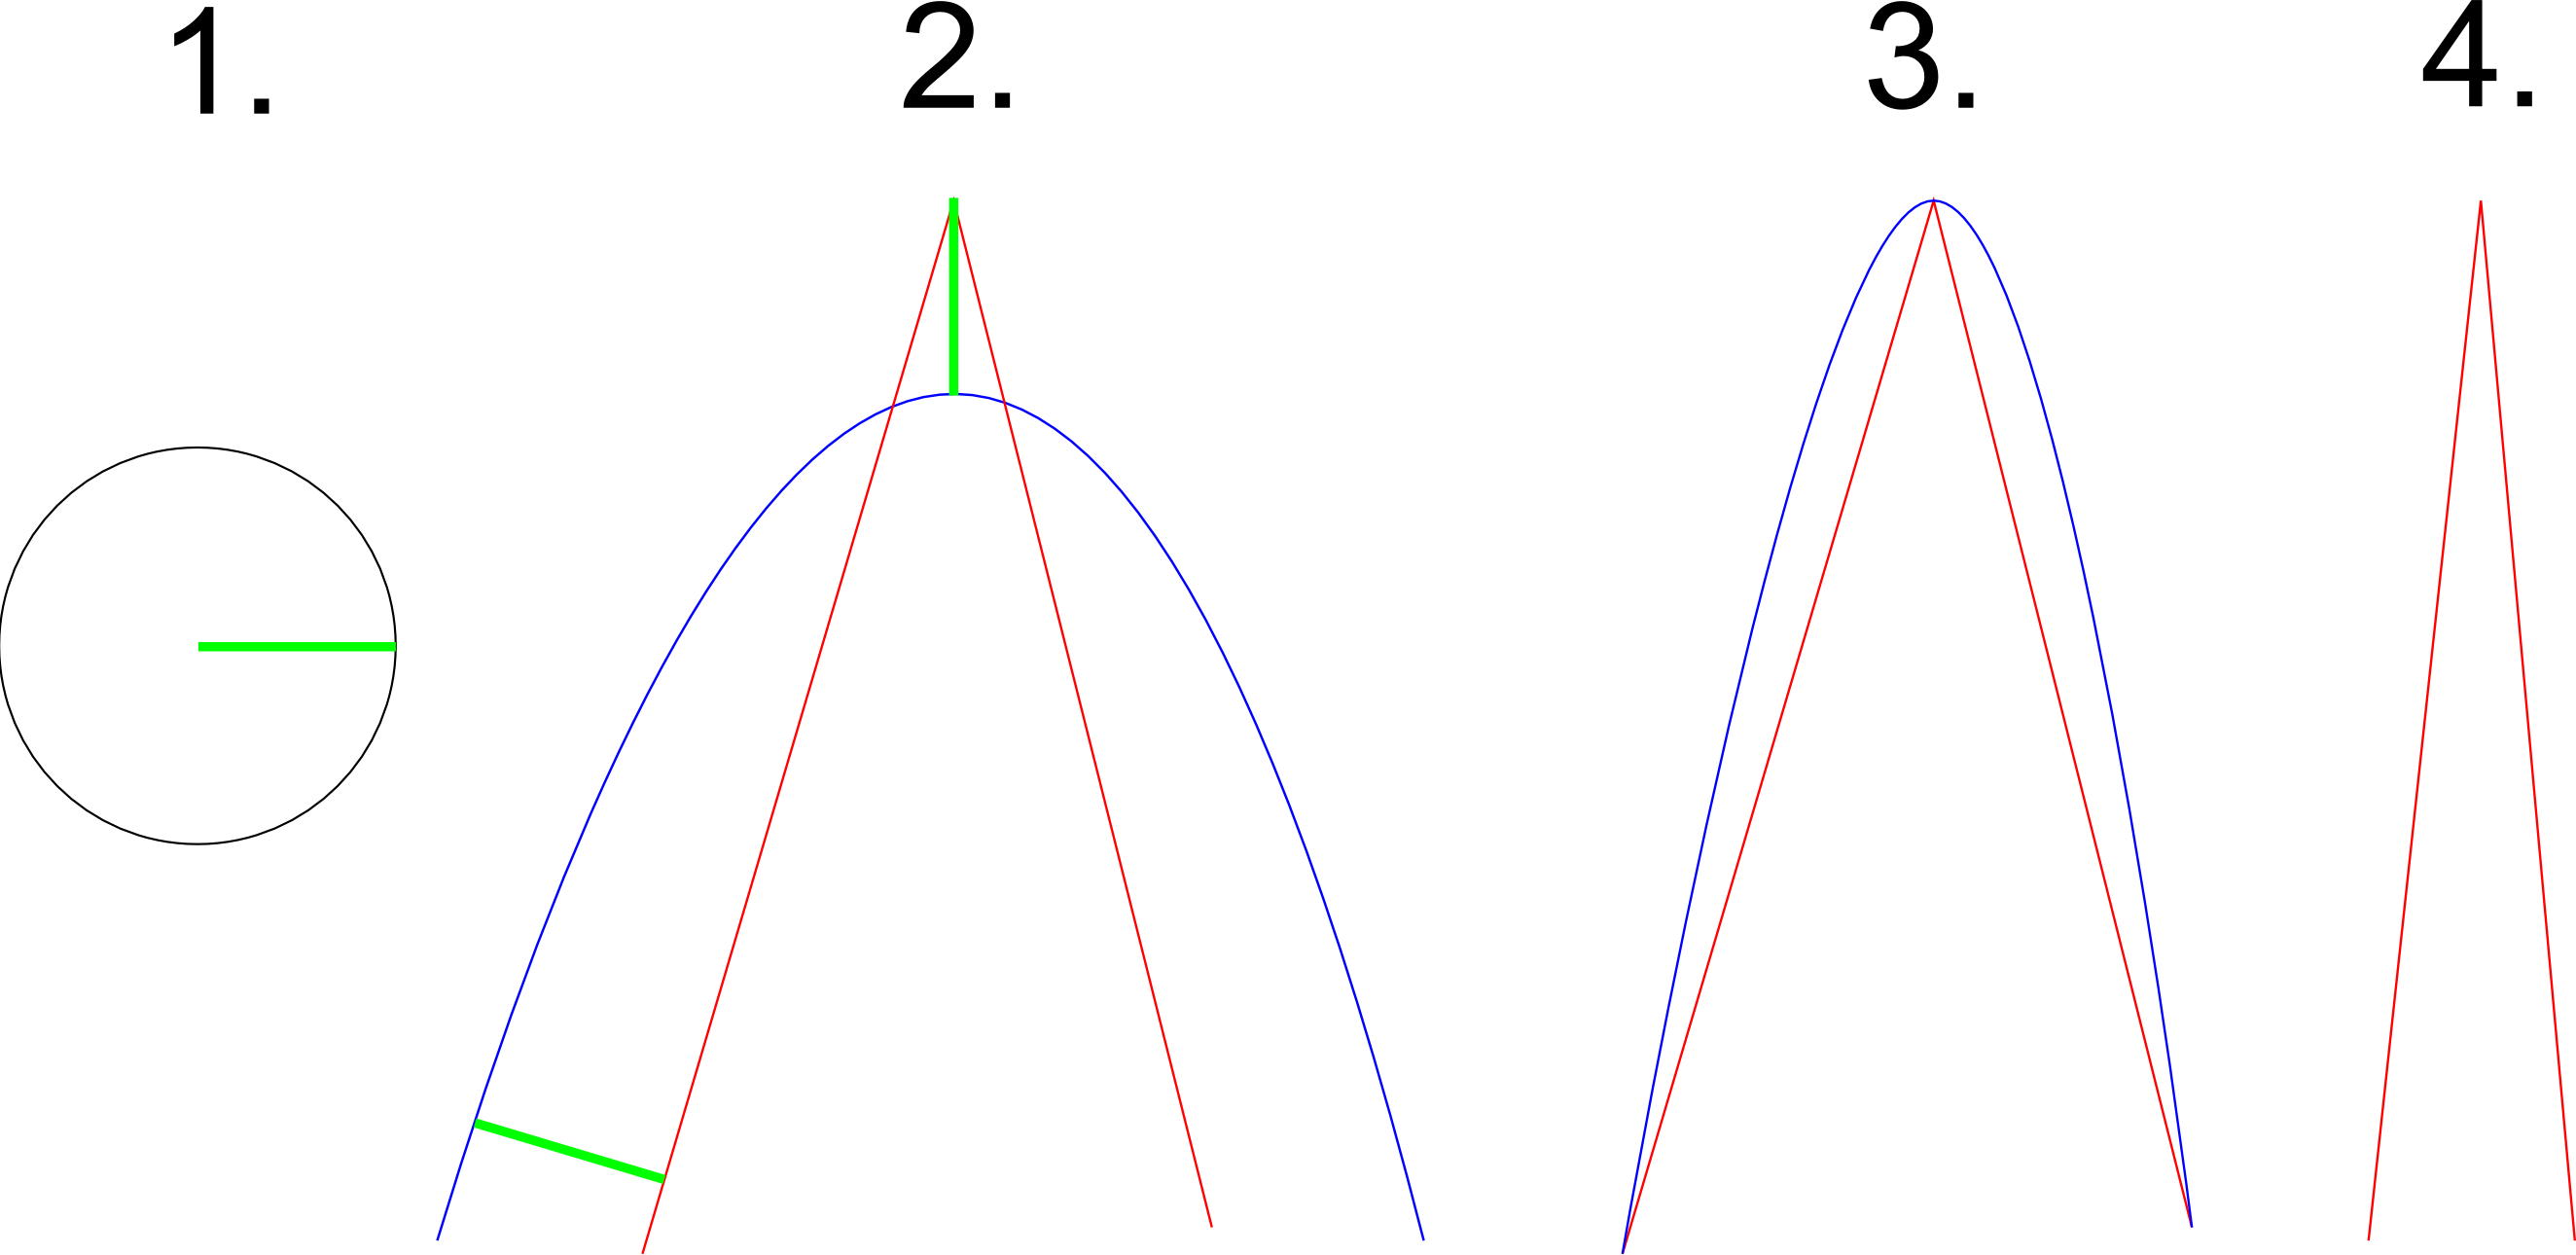 Svg paths bézier curve. Python approximating data with